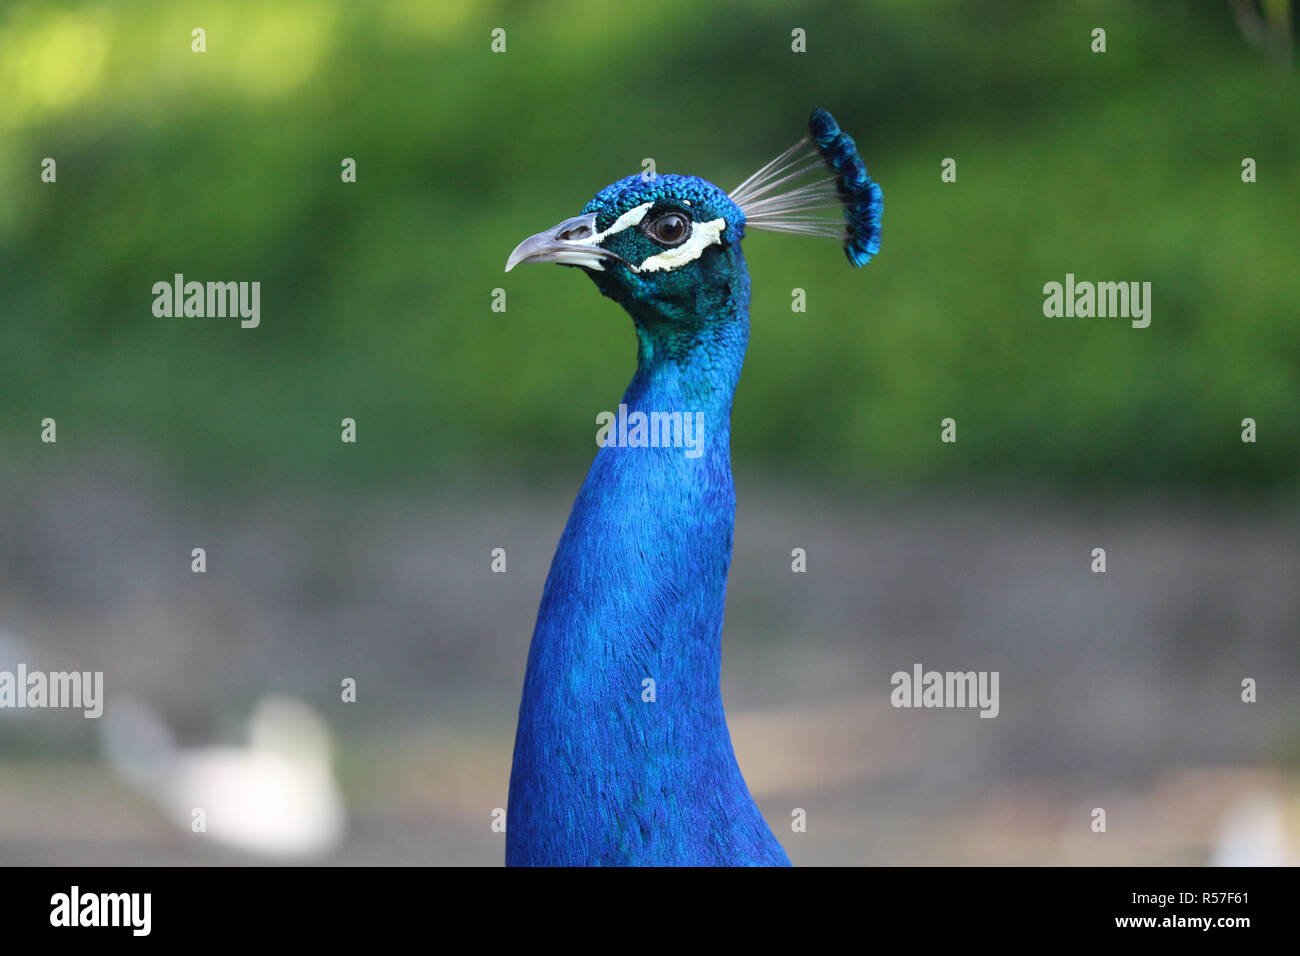 Blue peacock, bird of the Phasianidae family. Their long multicolored feathers are very beautiful, being an exotic bird very used for the removal of f - Stock Image